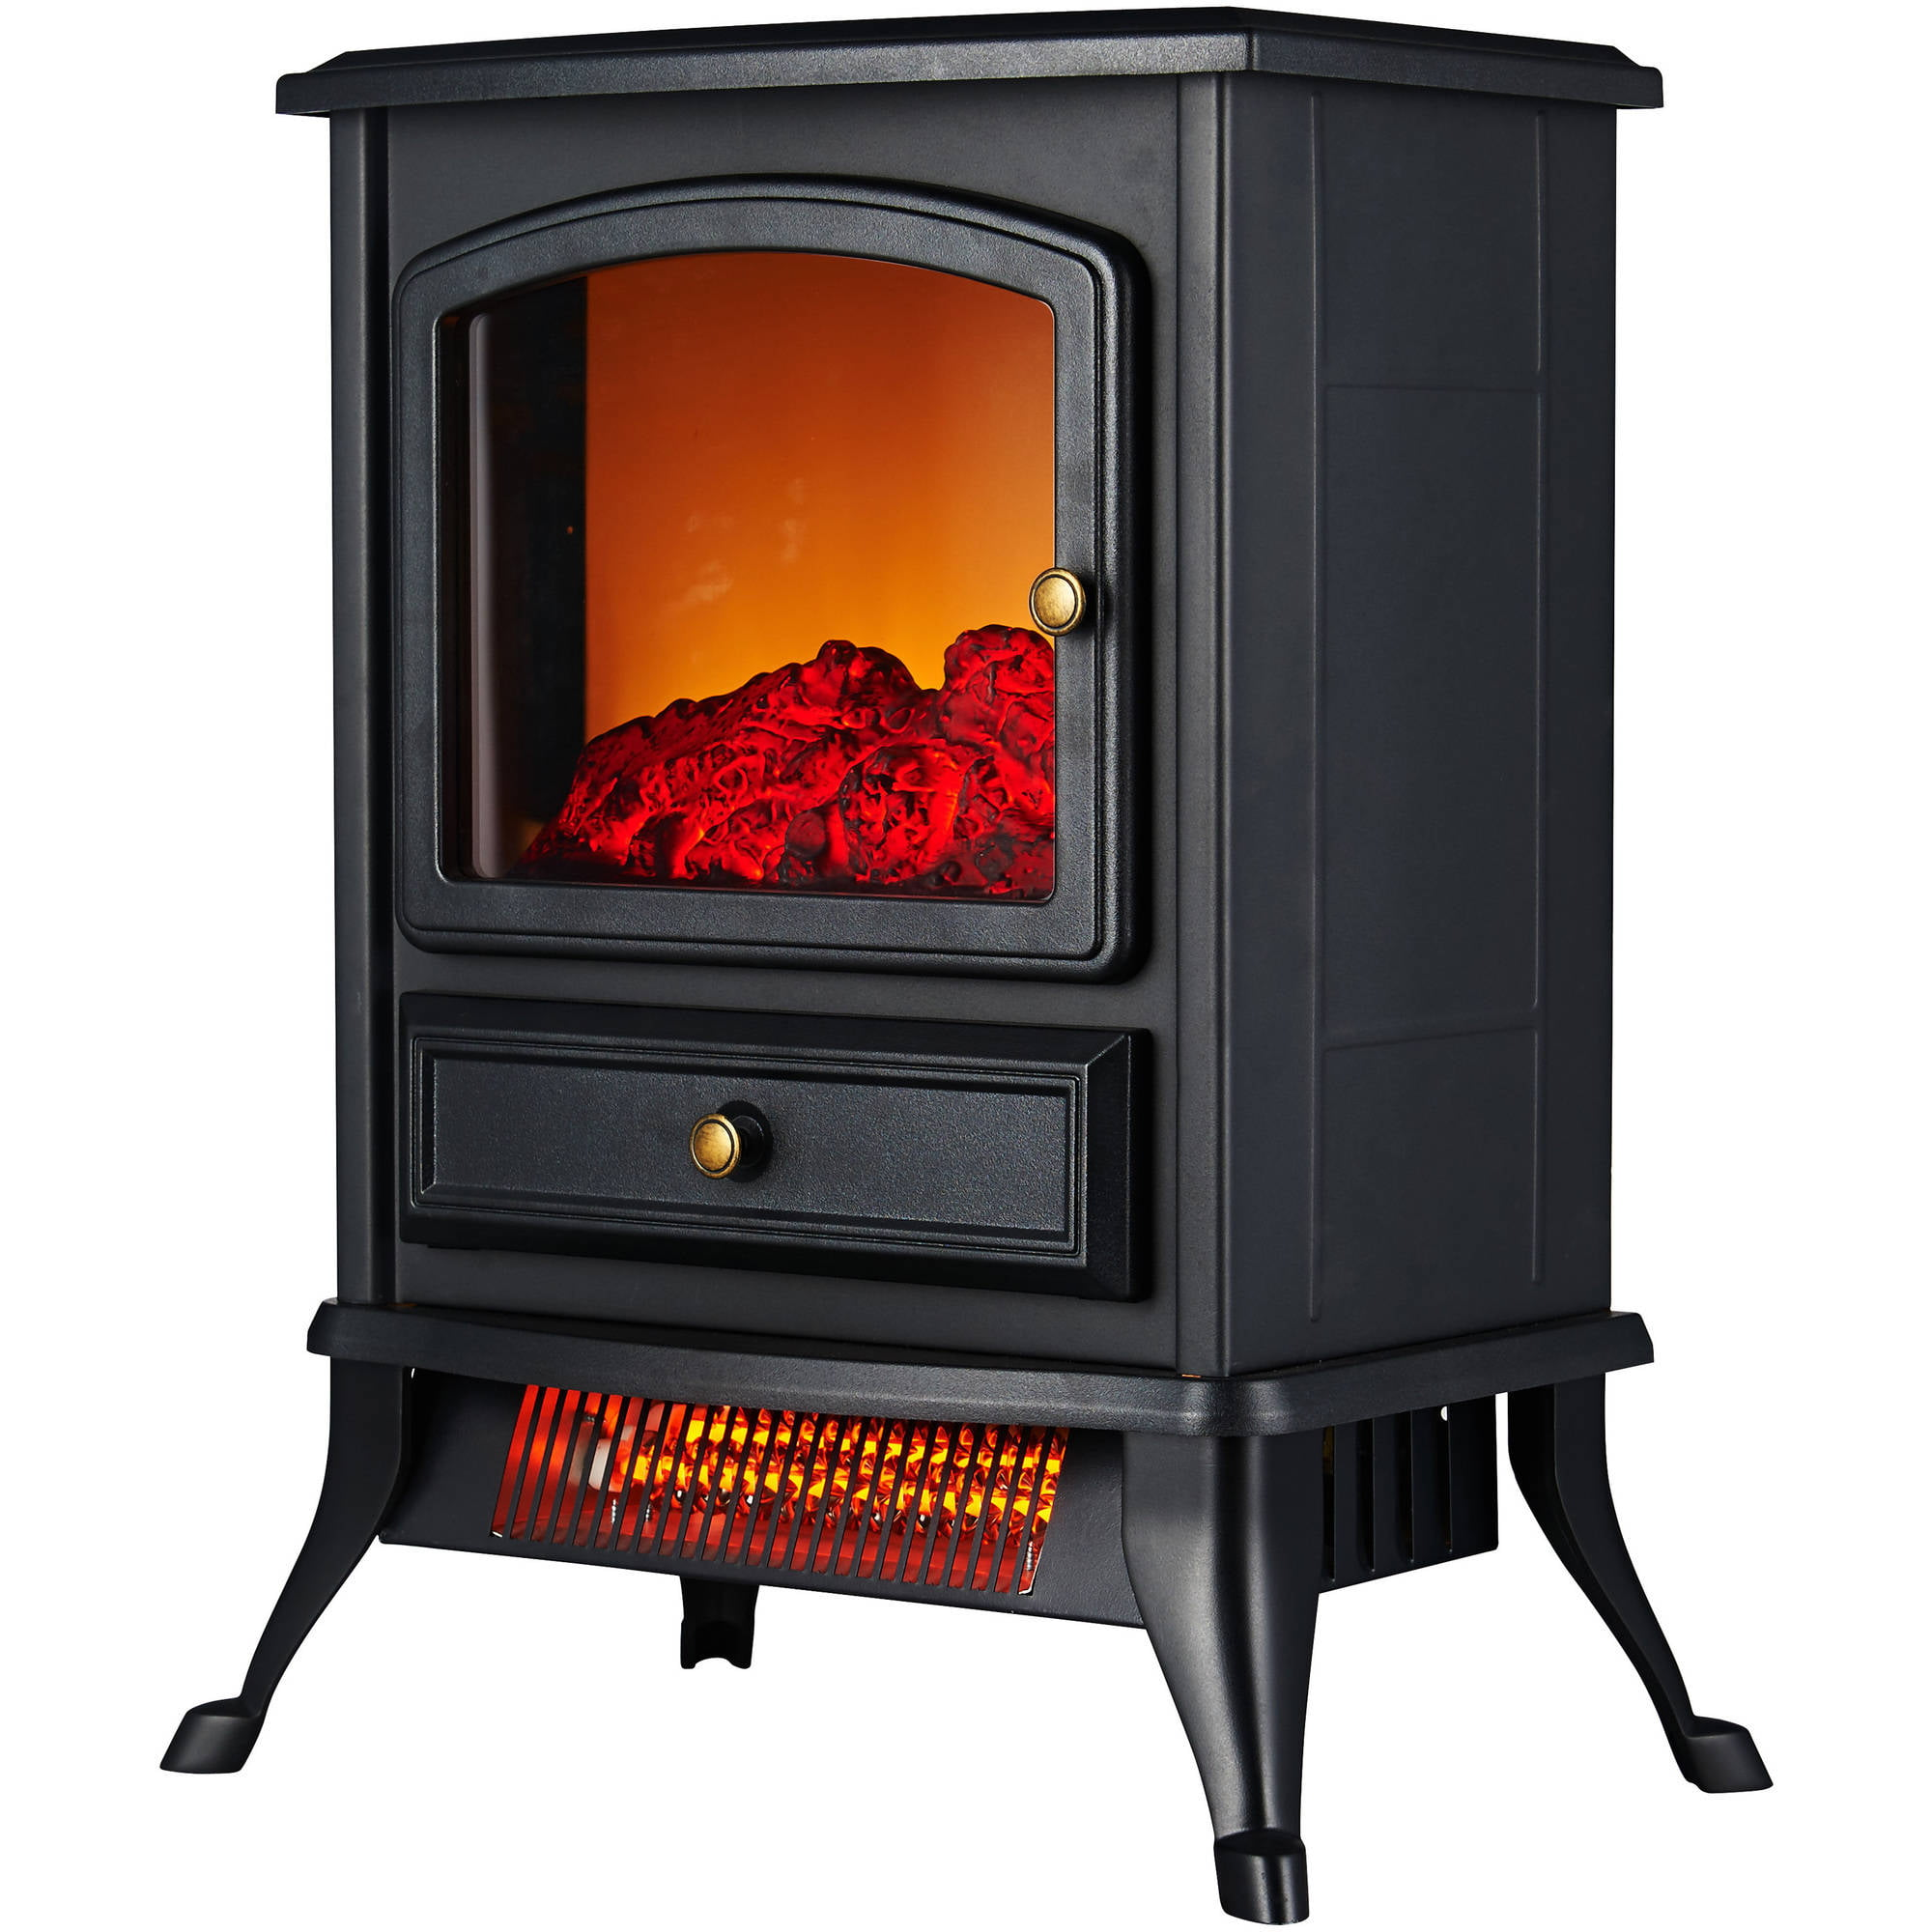 Chimneyfree Infrared Quartz Electric Space Heater 5 200 Btu